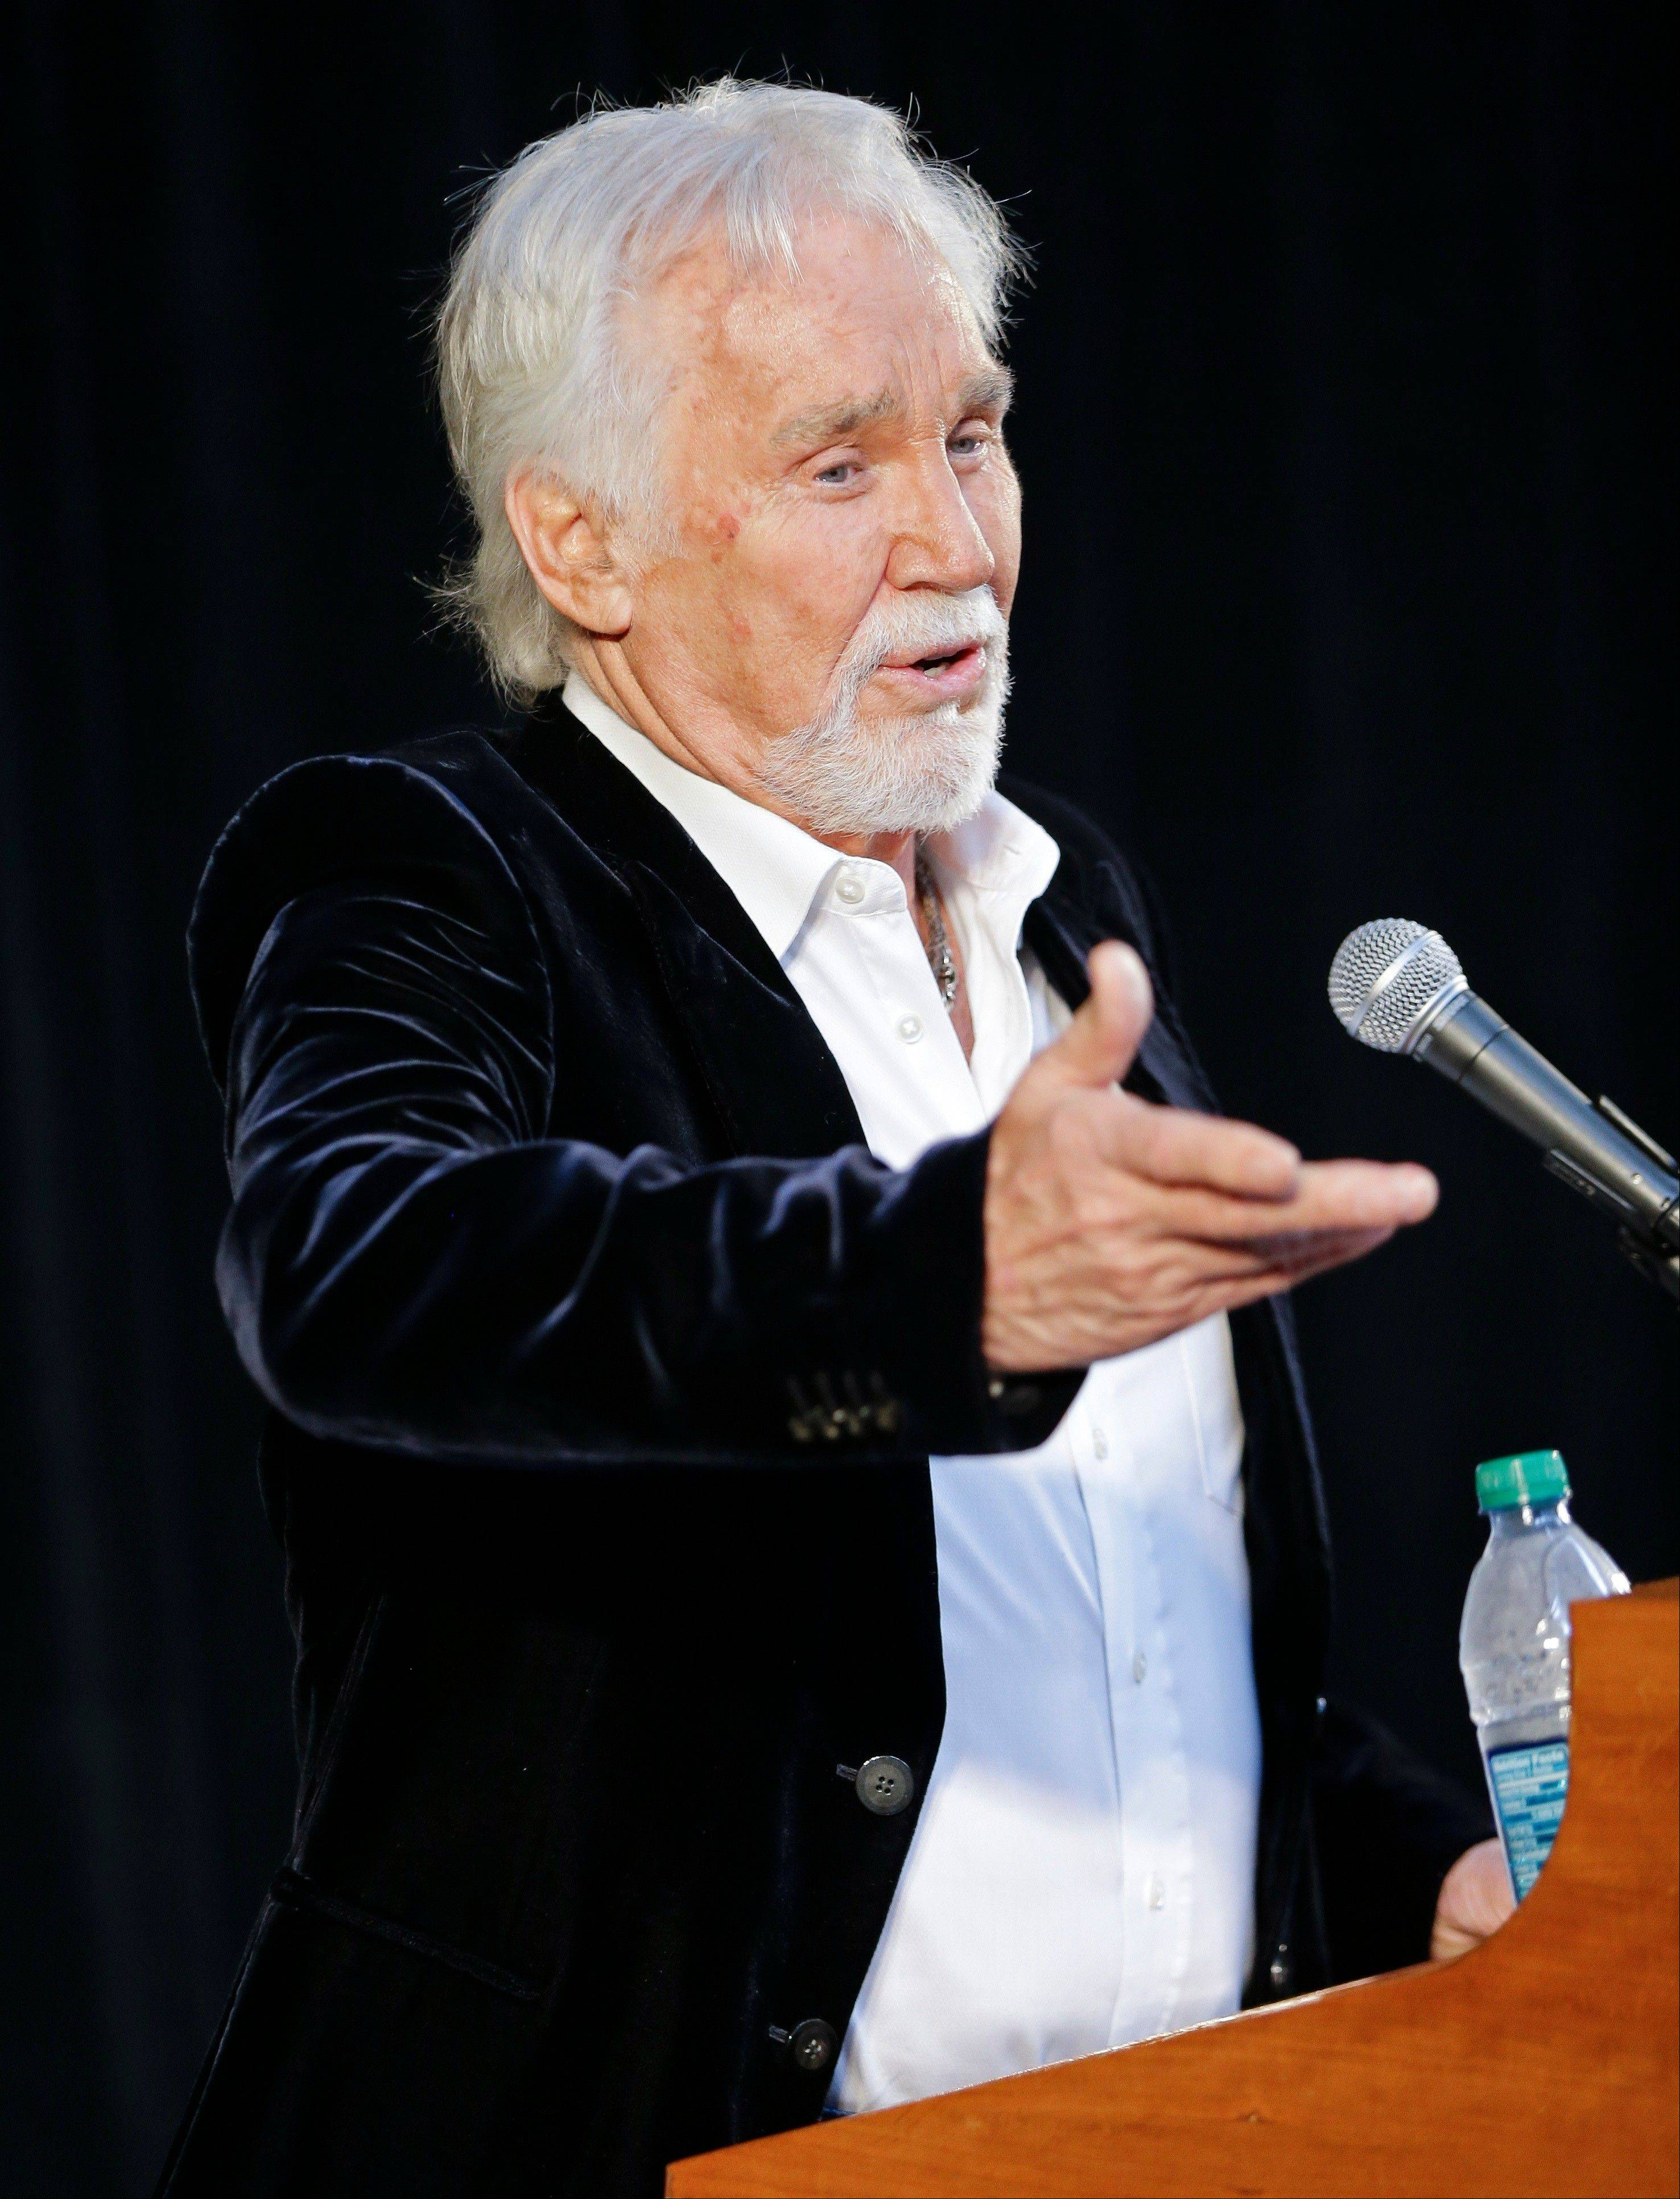 Kenny Rogers speaks on Wednesday in Nashville during the announcement that he will be inducted into the Country Music Hall of Fame. Rogers will be inducted with Bobby Bare and Jack Clement.